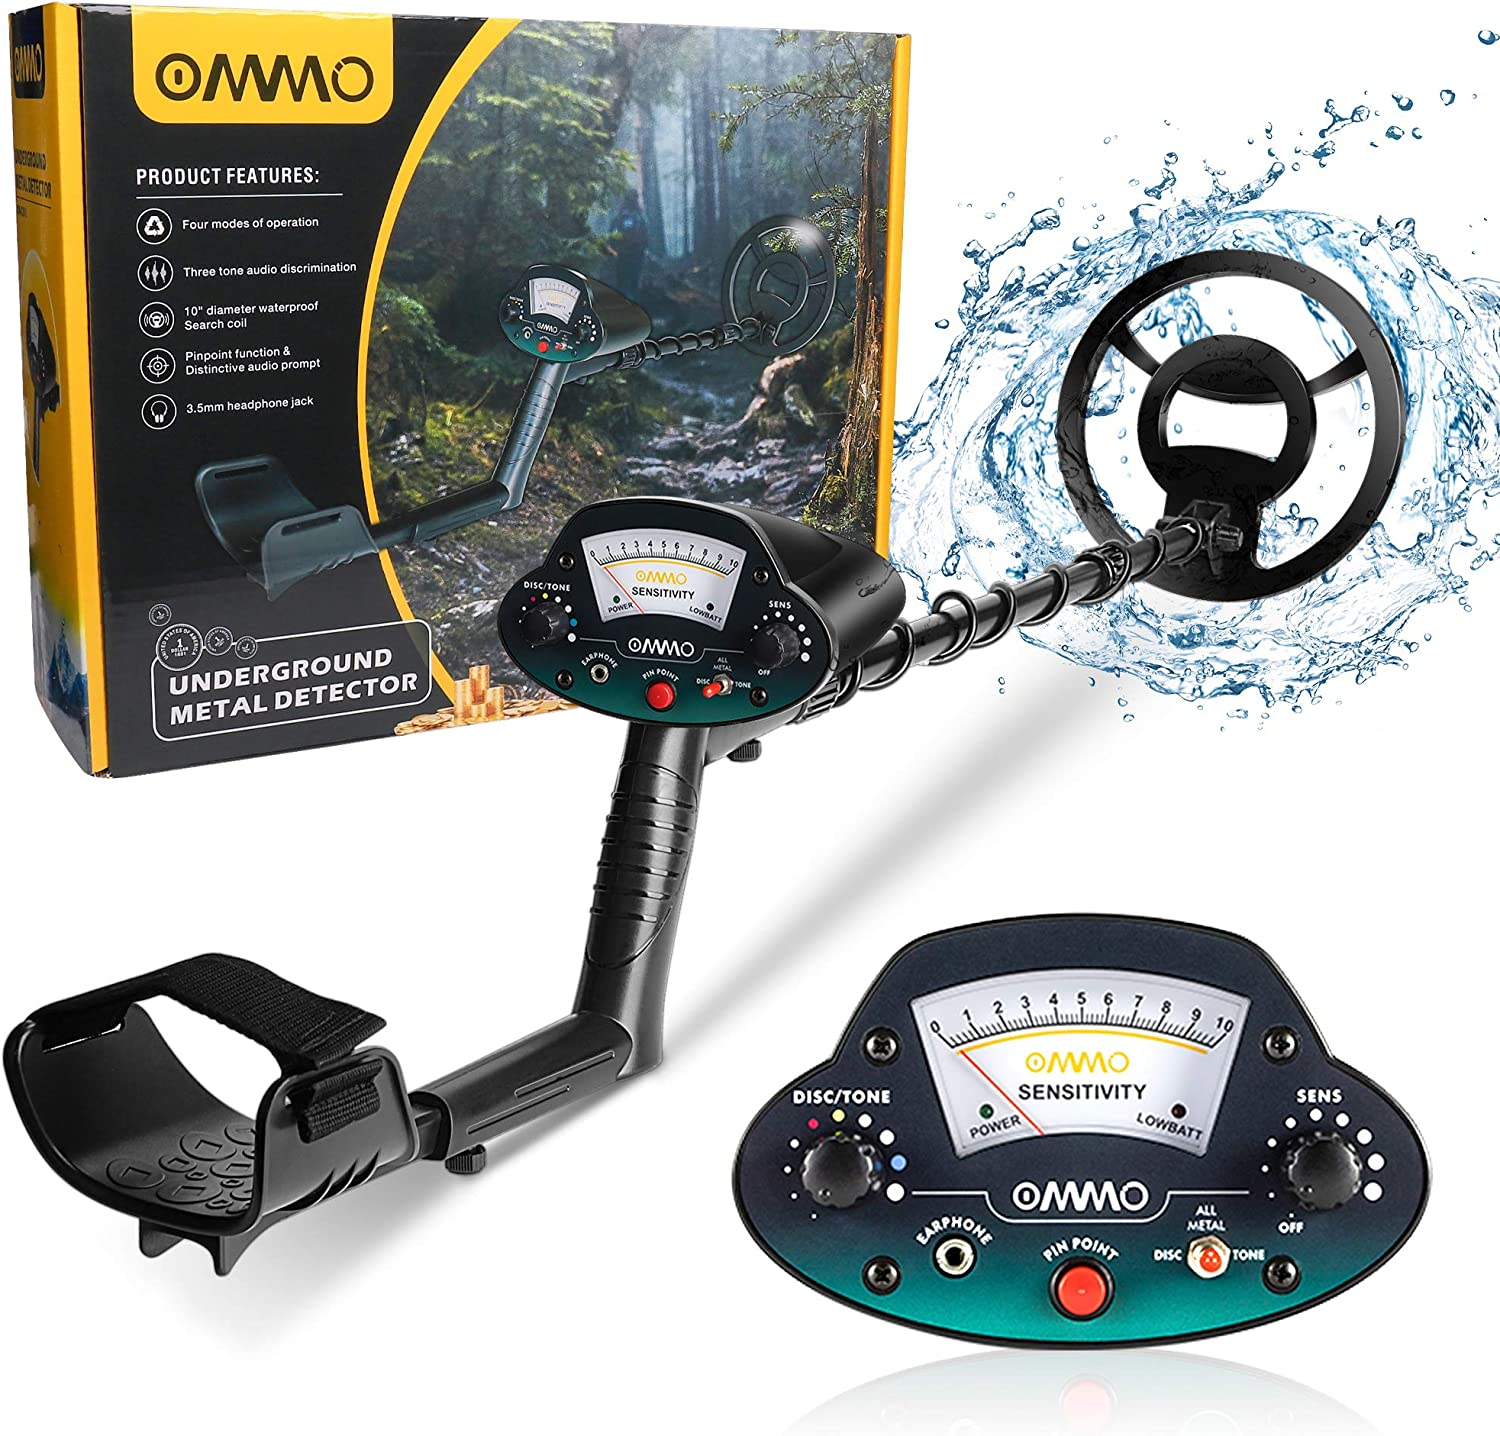 OMMO Metal Detector for Adults & Kids, Waterproof Metal Detectors with High Accuracy Adjustable Pointer Display, Pinpoint & Discrimination & All Metal &Tone Mode, for Detecting Coin, Beach Treasures